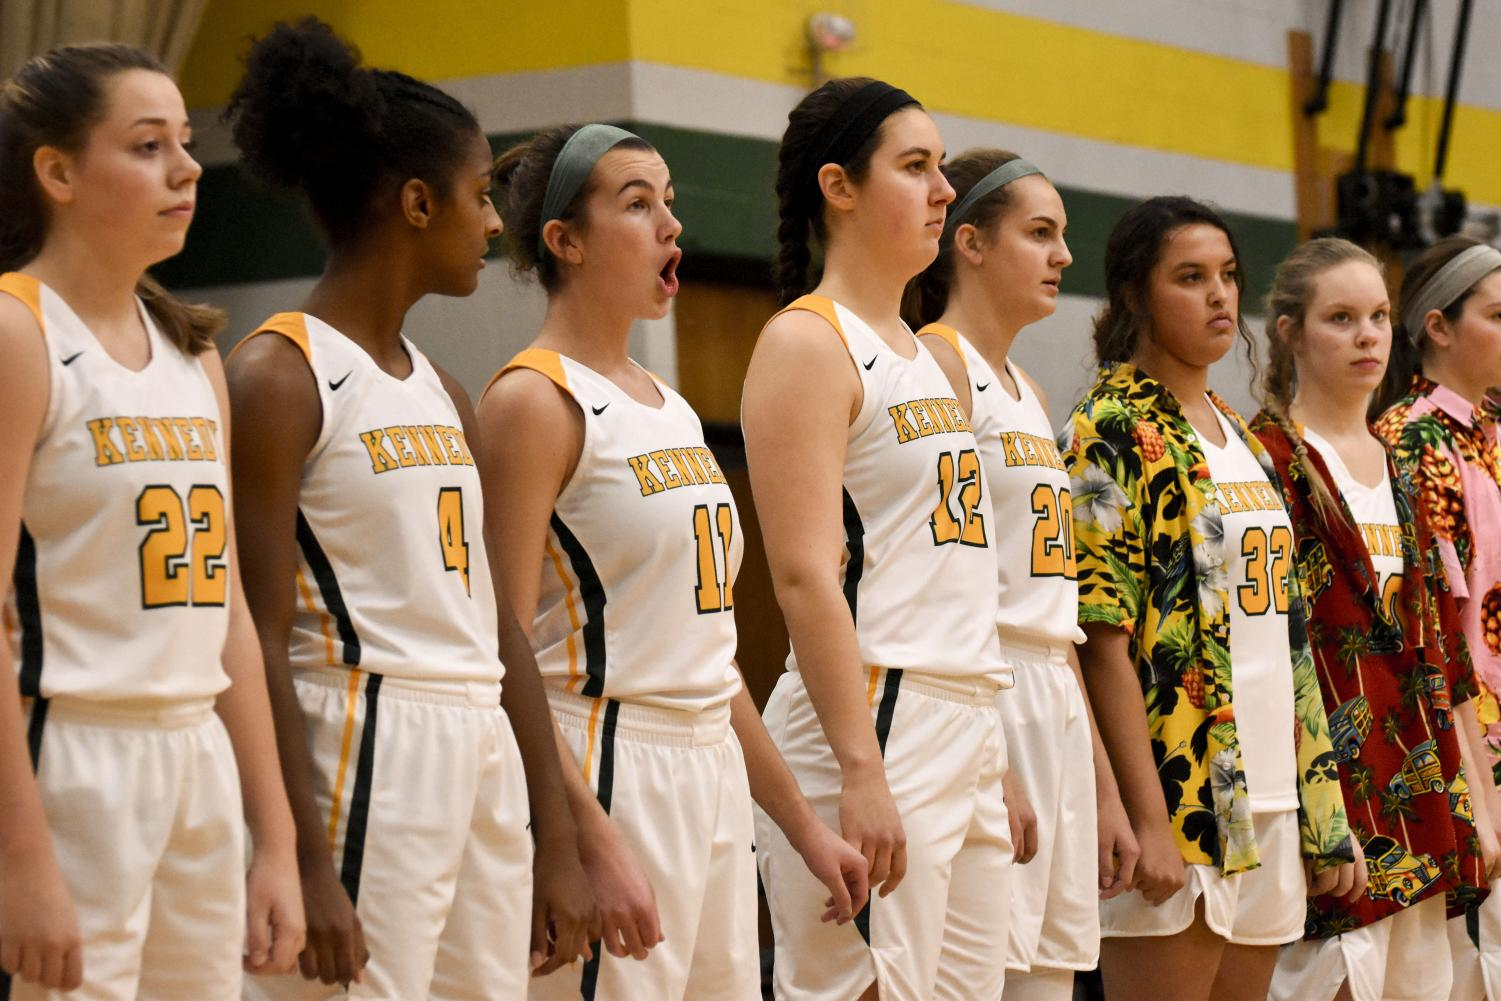 Kennedy's women basketball team line up for the National Anthem.